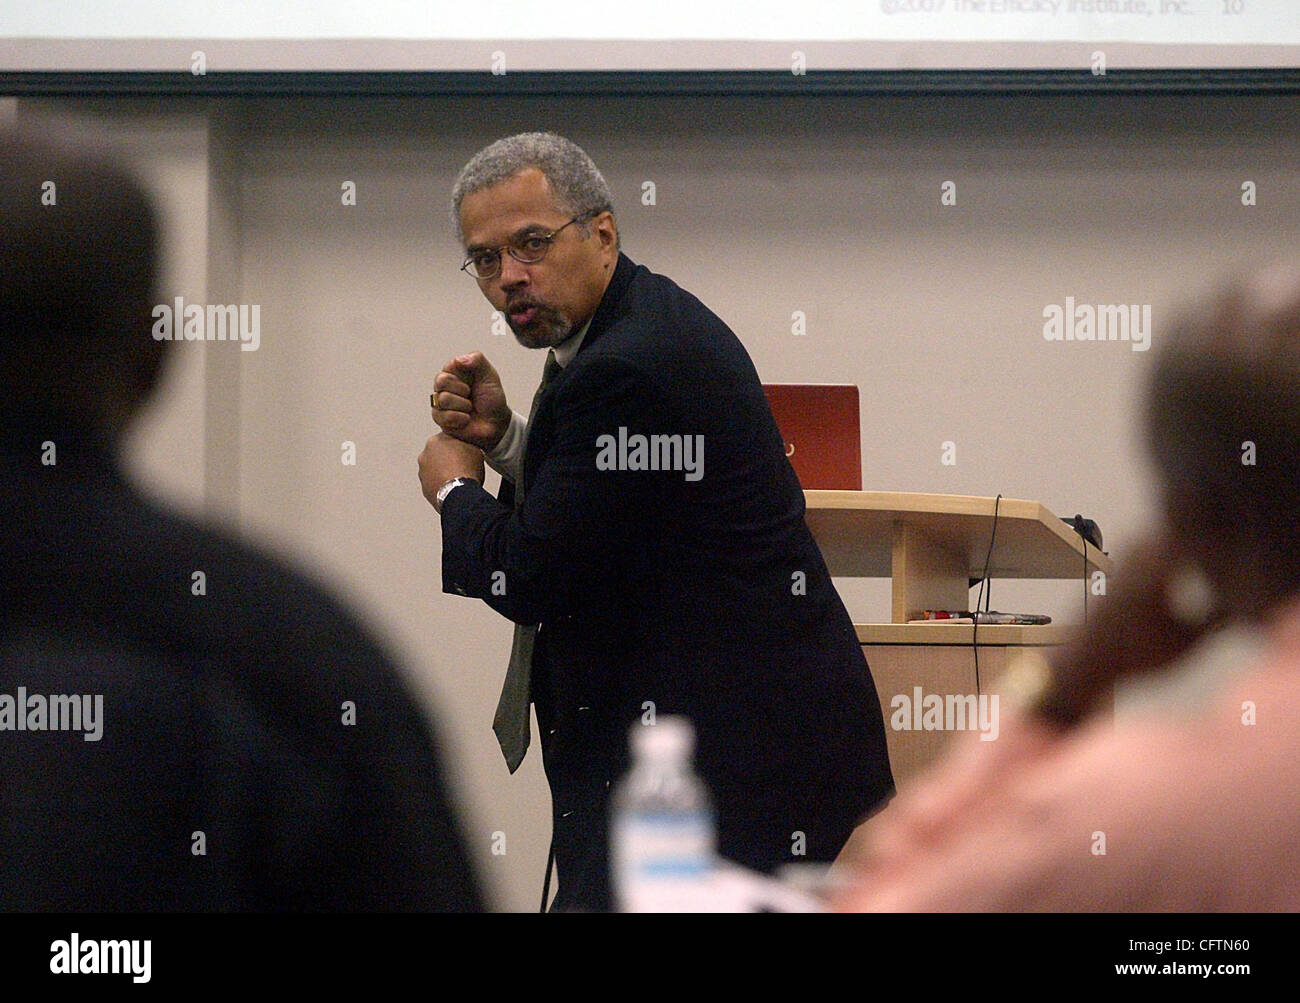 Jan 18, 2007 - Boca Raton, FL, USA - Consultant DR. JEFF HOWARD uses a baseball analogy while teaching school teachers - Stock Image